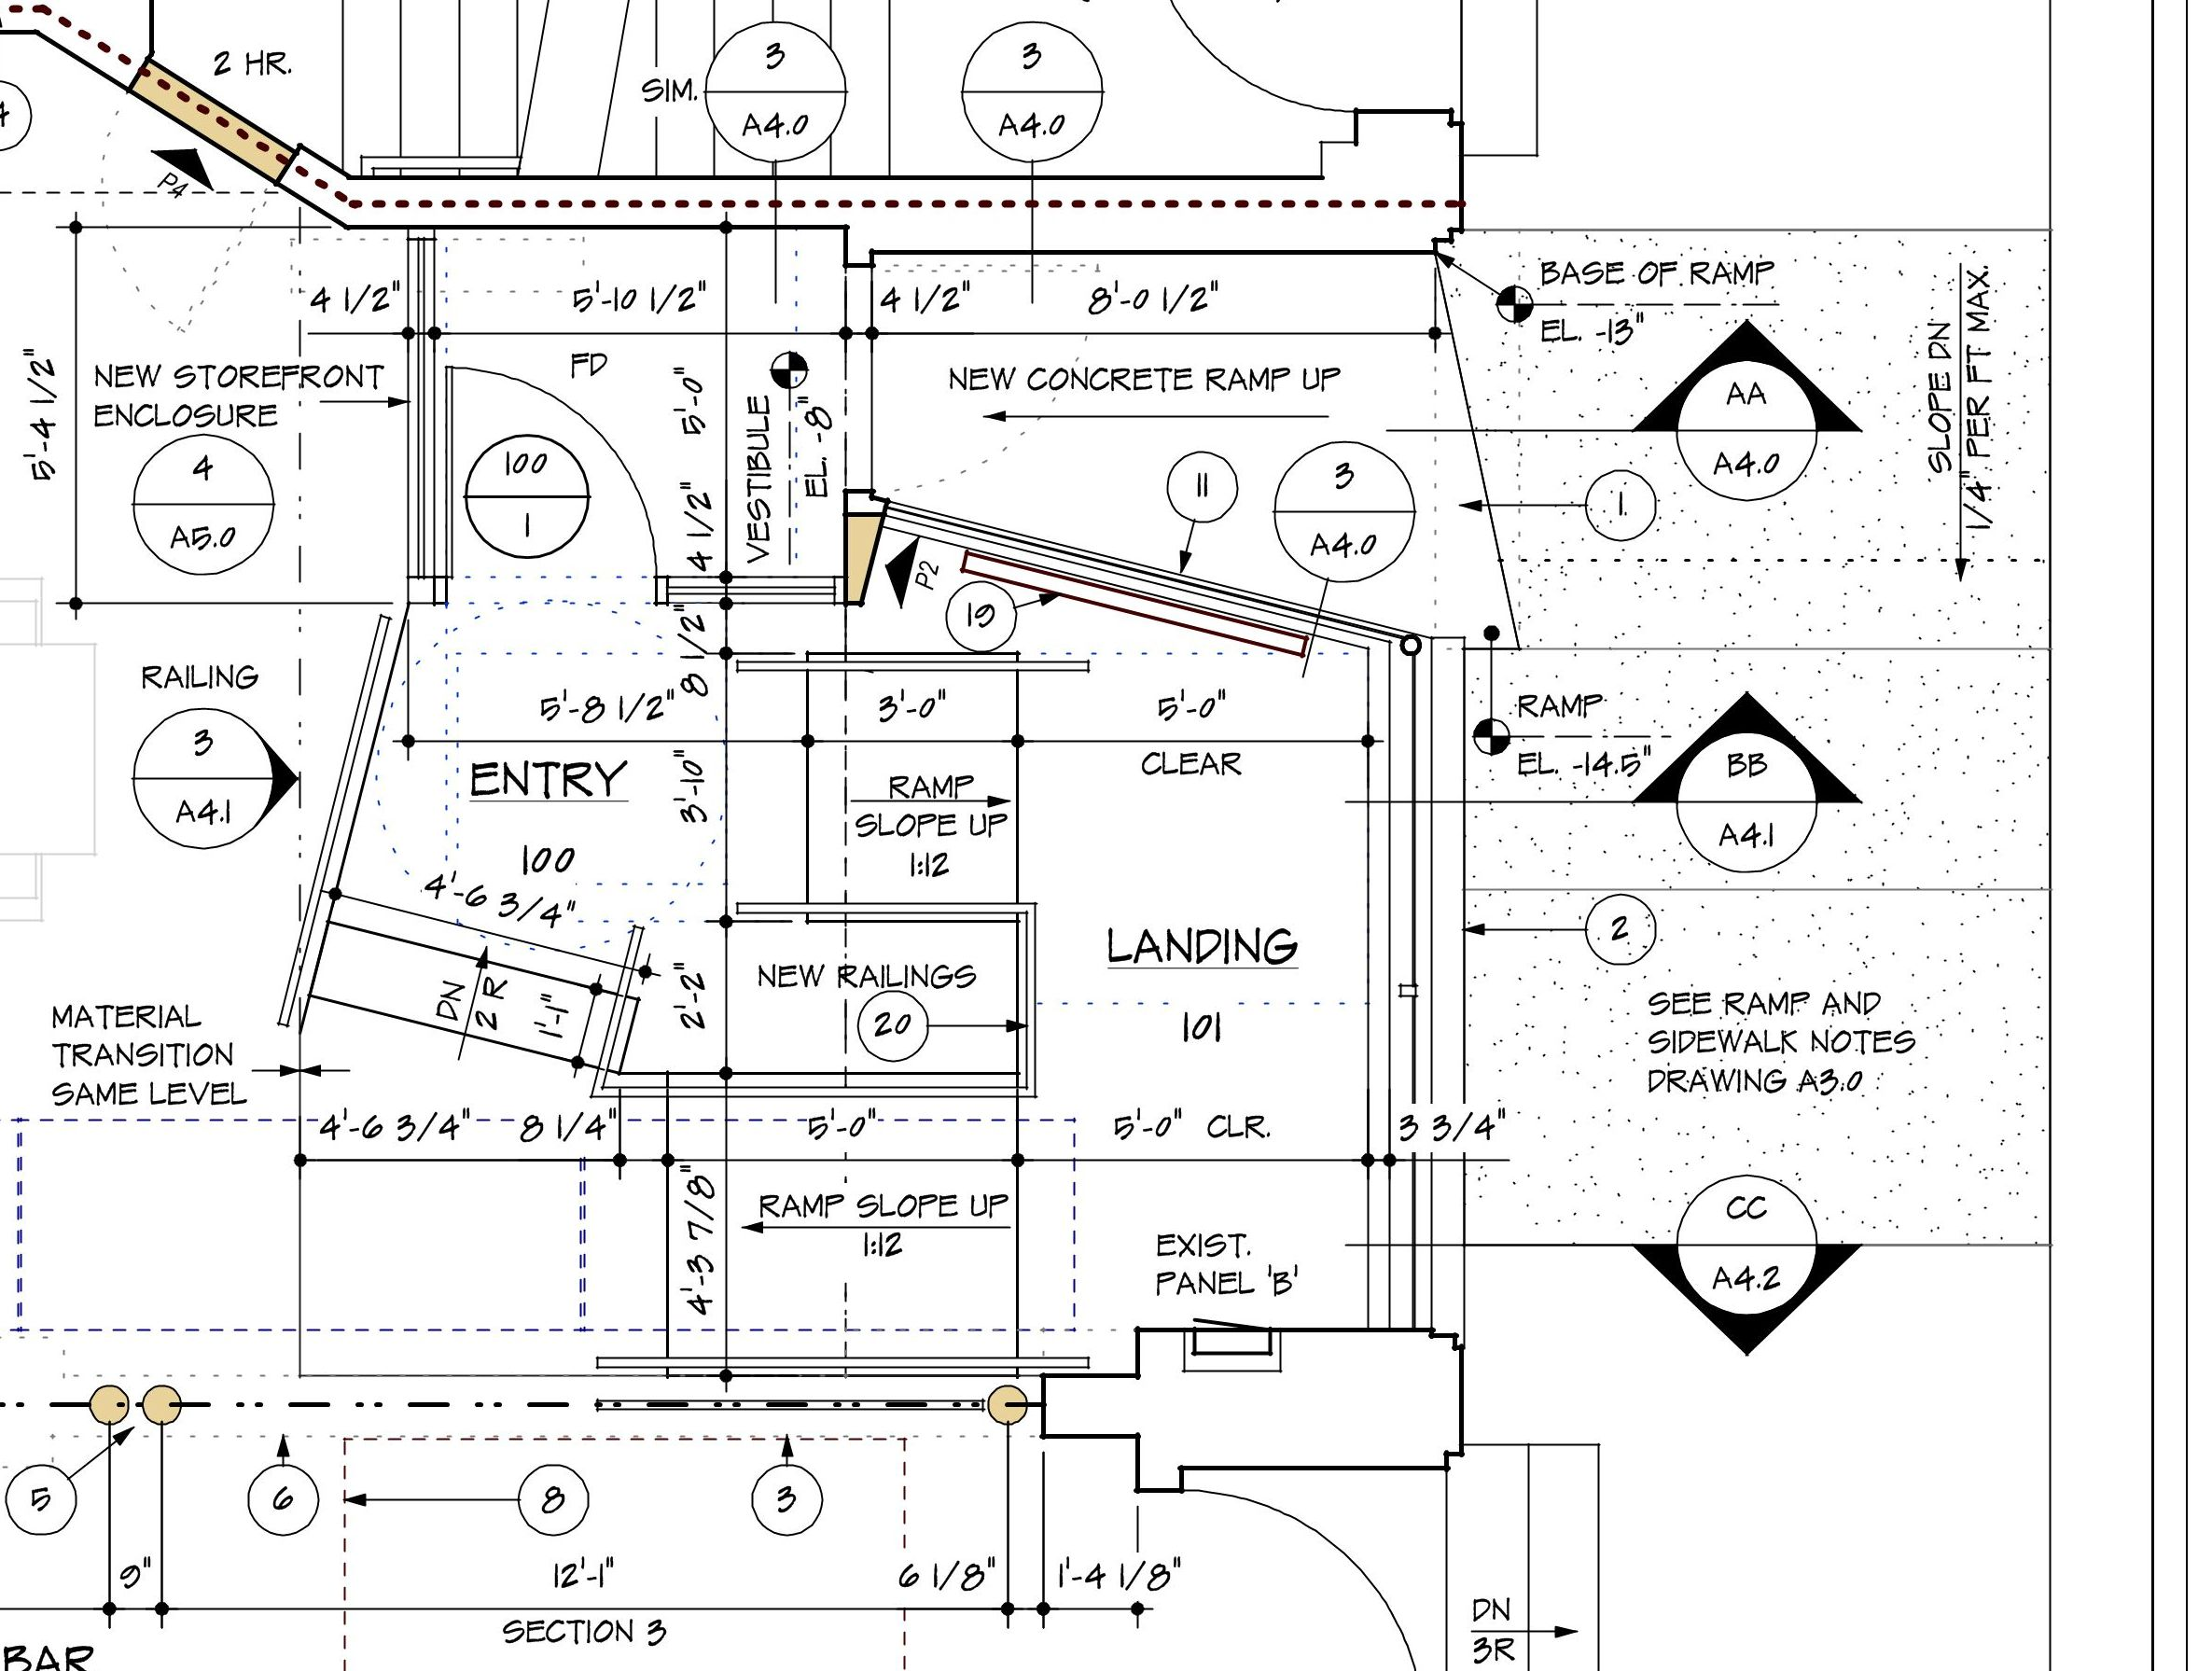 Plans For Wooden Ramp Plans Free Download Periodic51atl